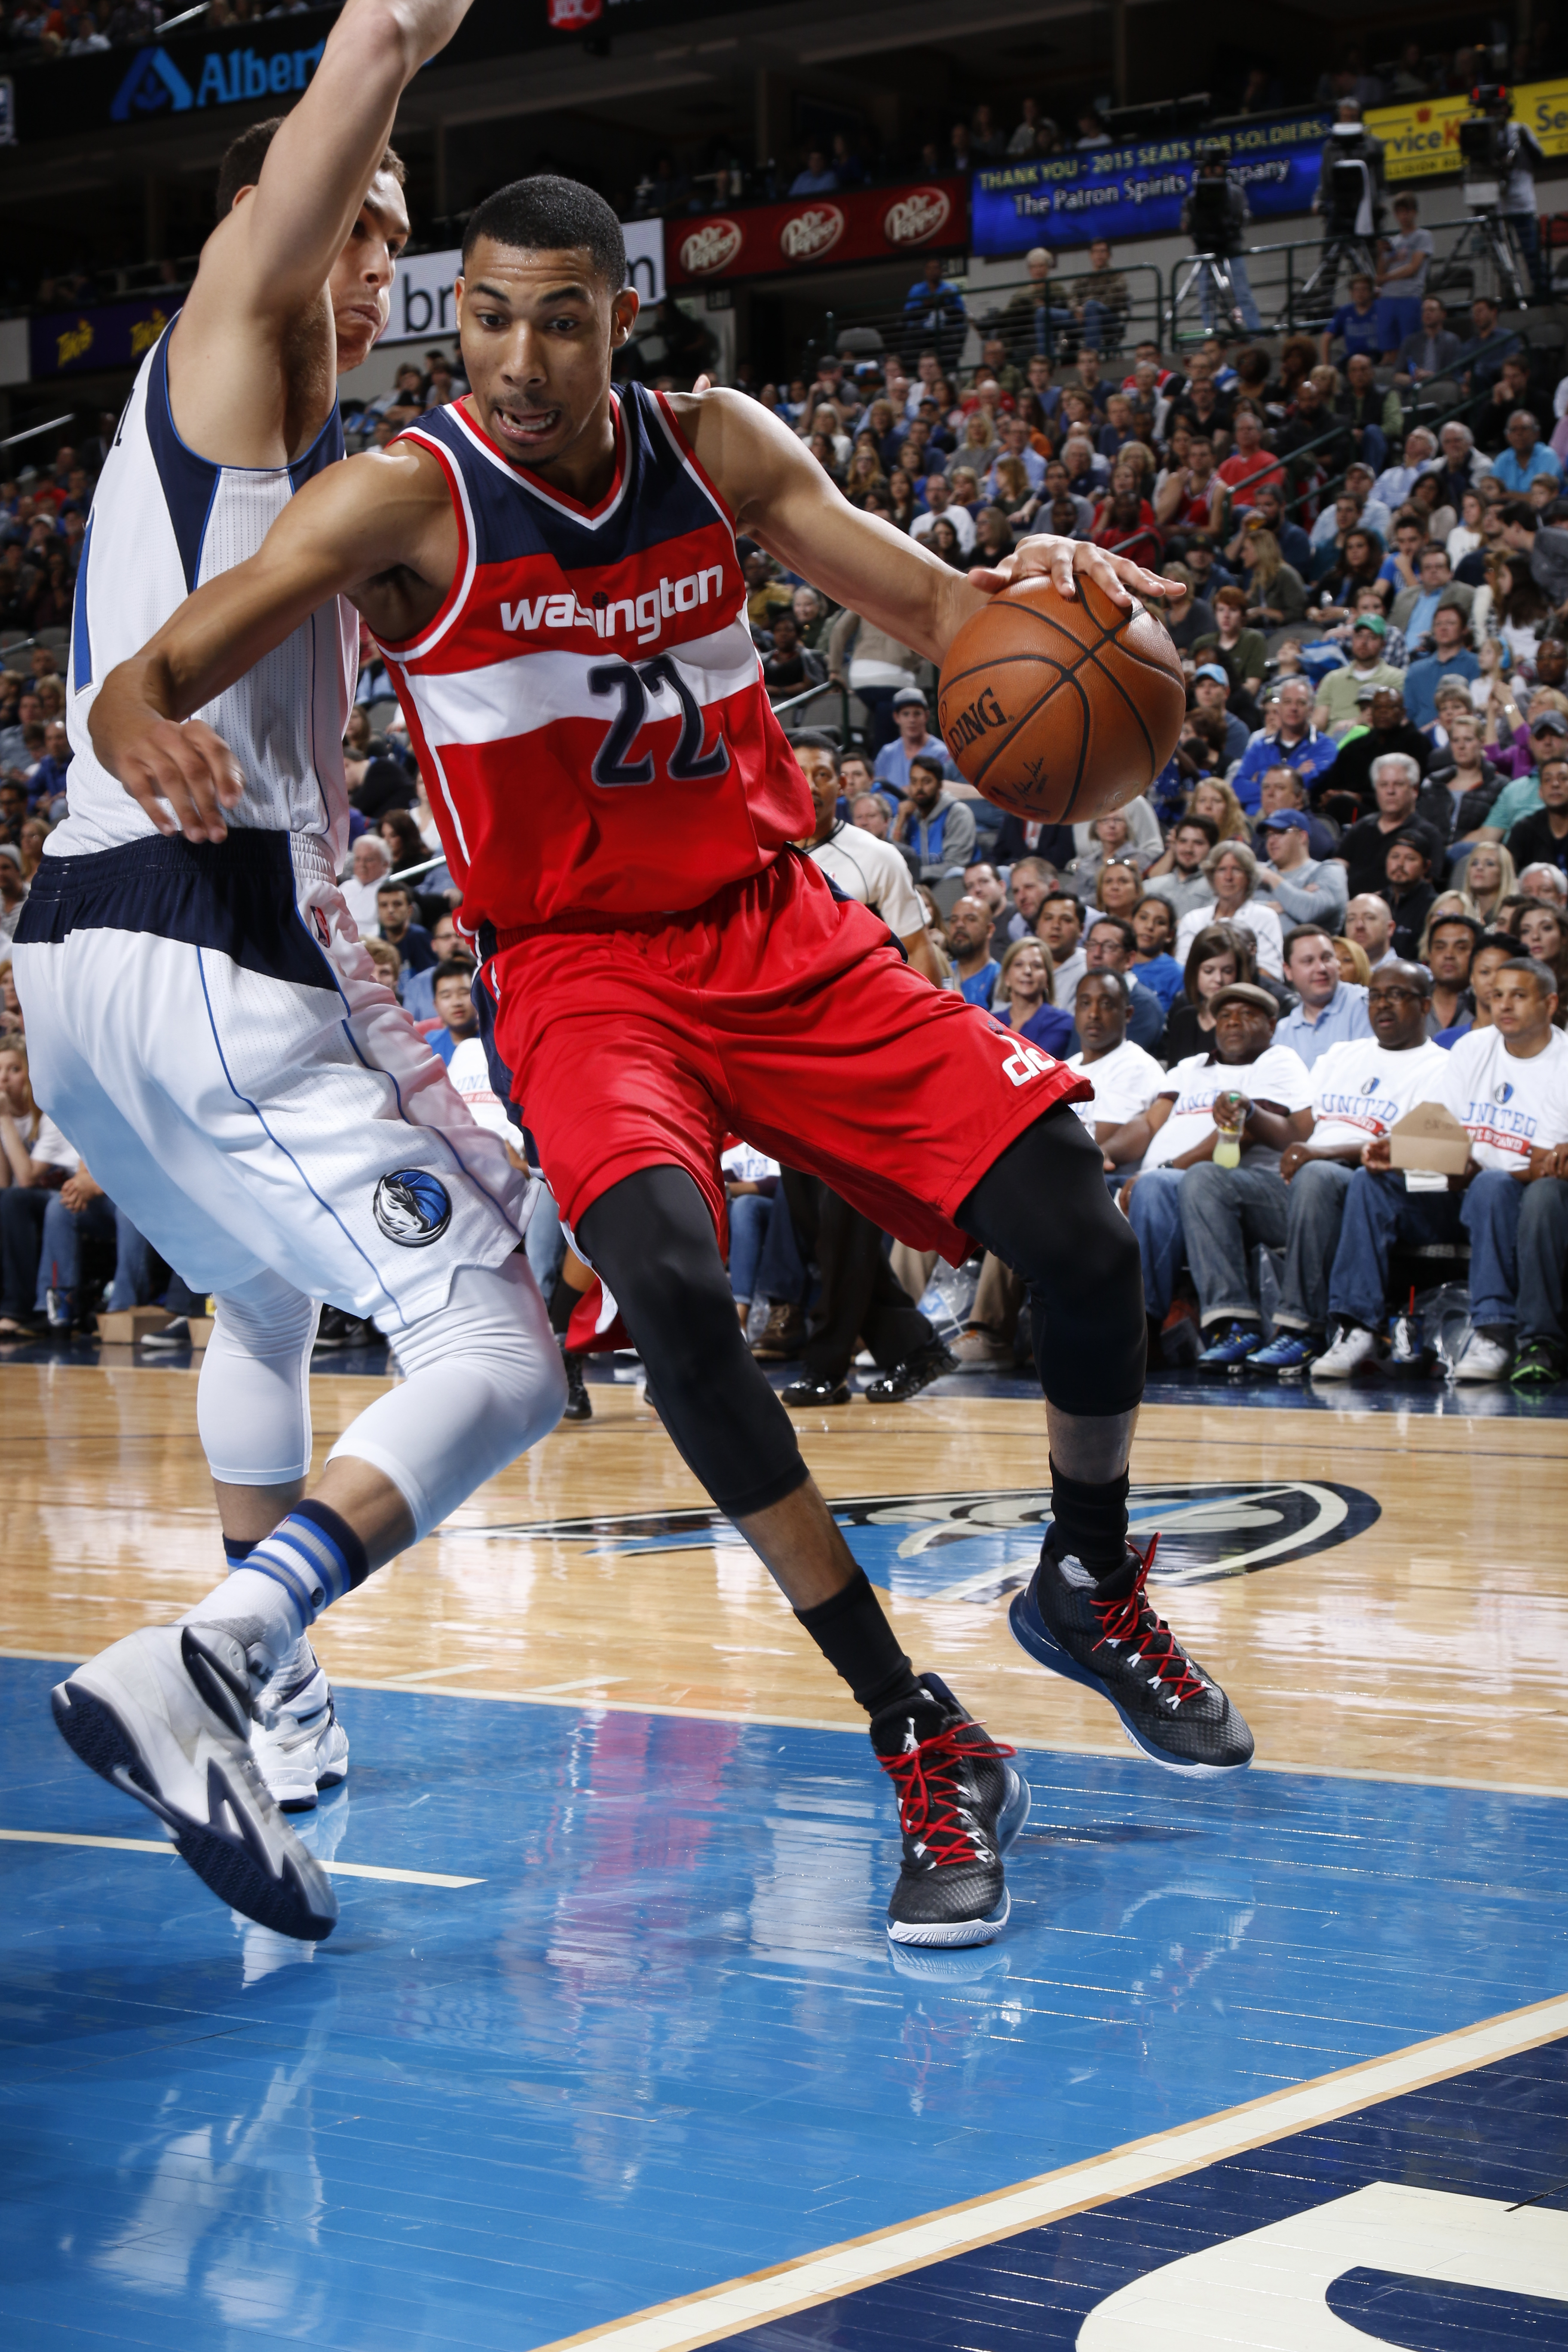 DALLAS, TX - DECEMBER 12: Otto Porter Jr. #22 of the Washington Wizards drives against the Dallas Mavericks on December 12, 2015 at the American Airlines Center in Dallas, Texas. (Photo by Glenn James/NBAE via Getty Images)